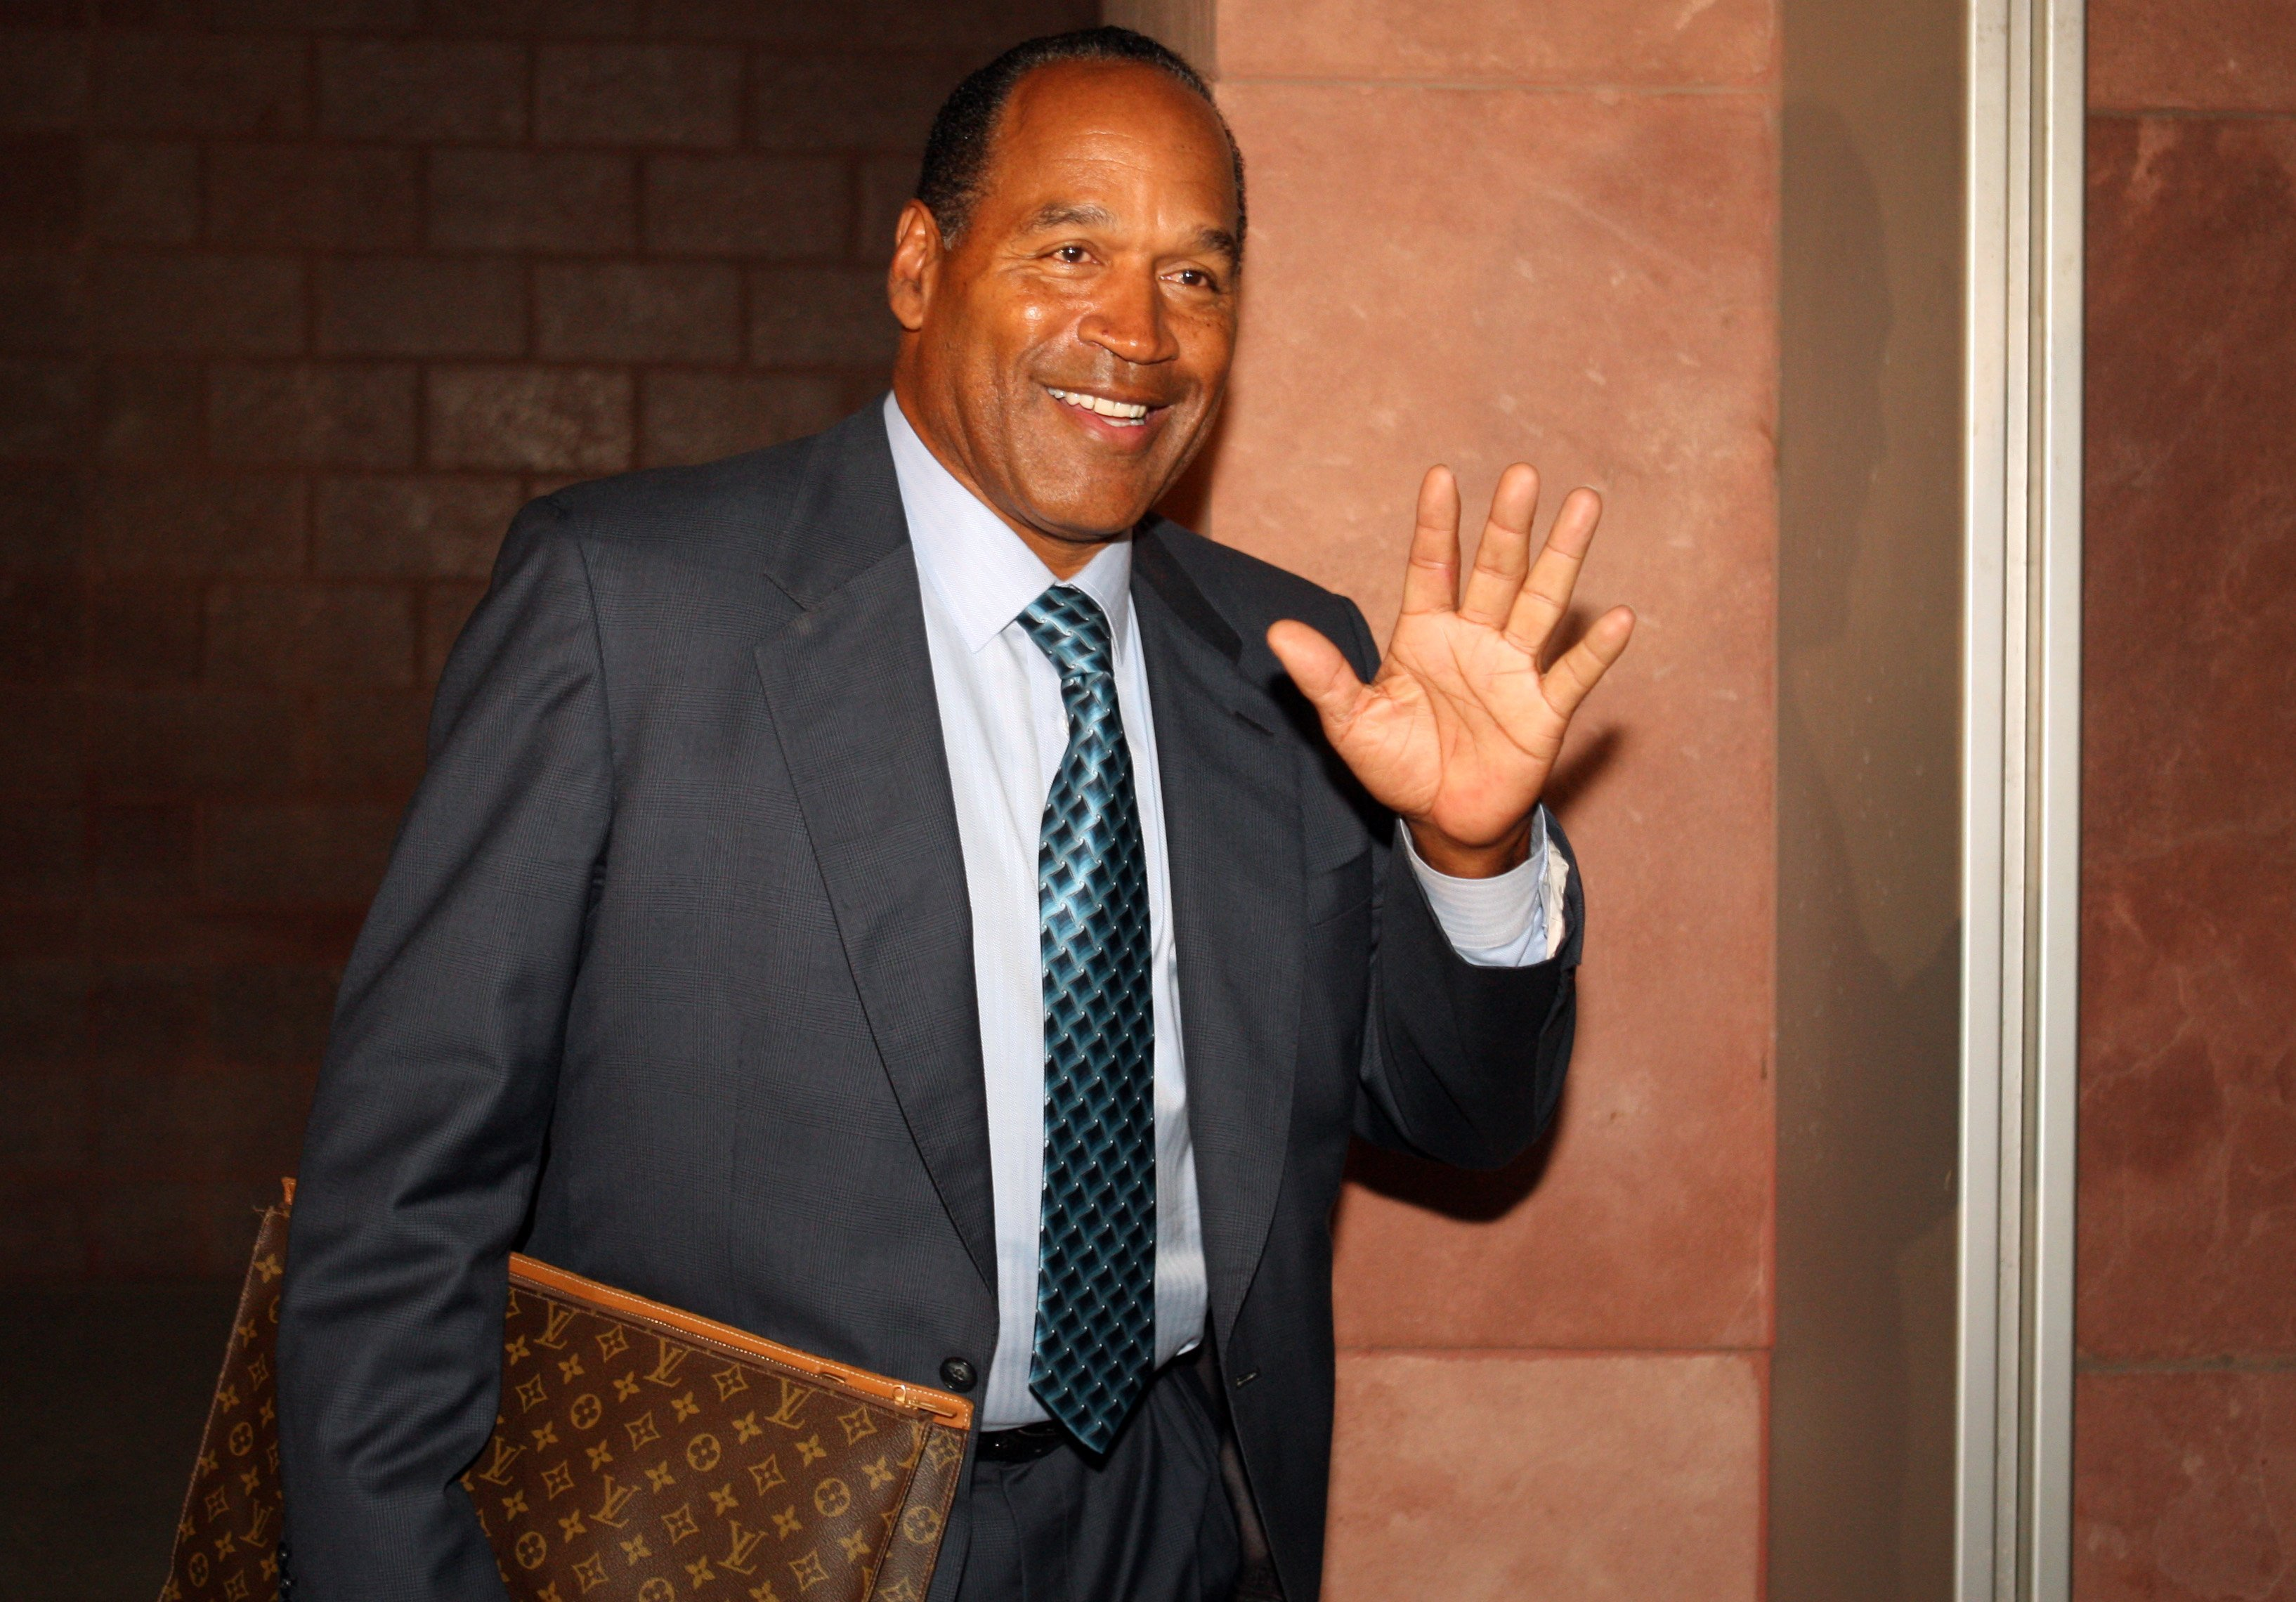 OJ Simpson after the closing arguments of his trial for armed robbery in October 2008. | Photo: Getty Images